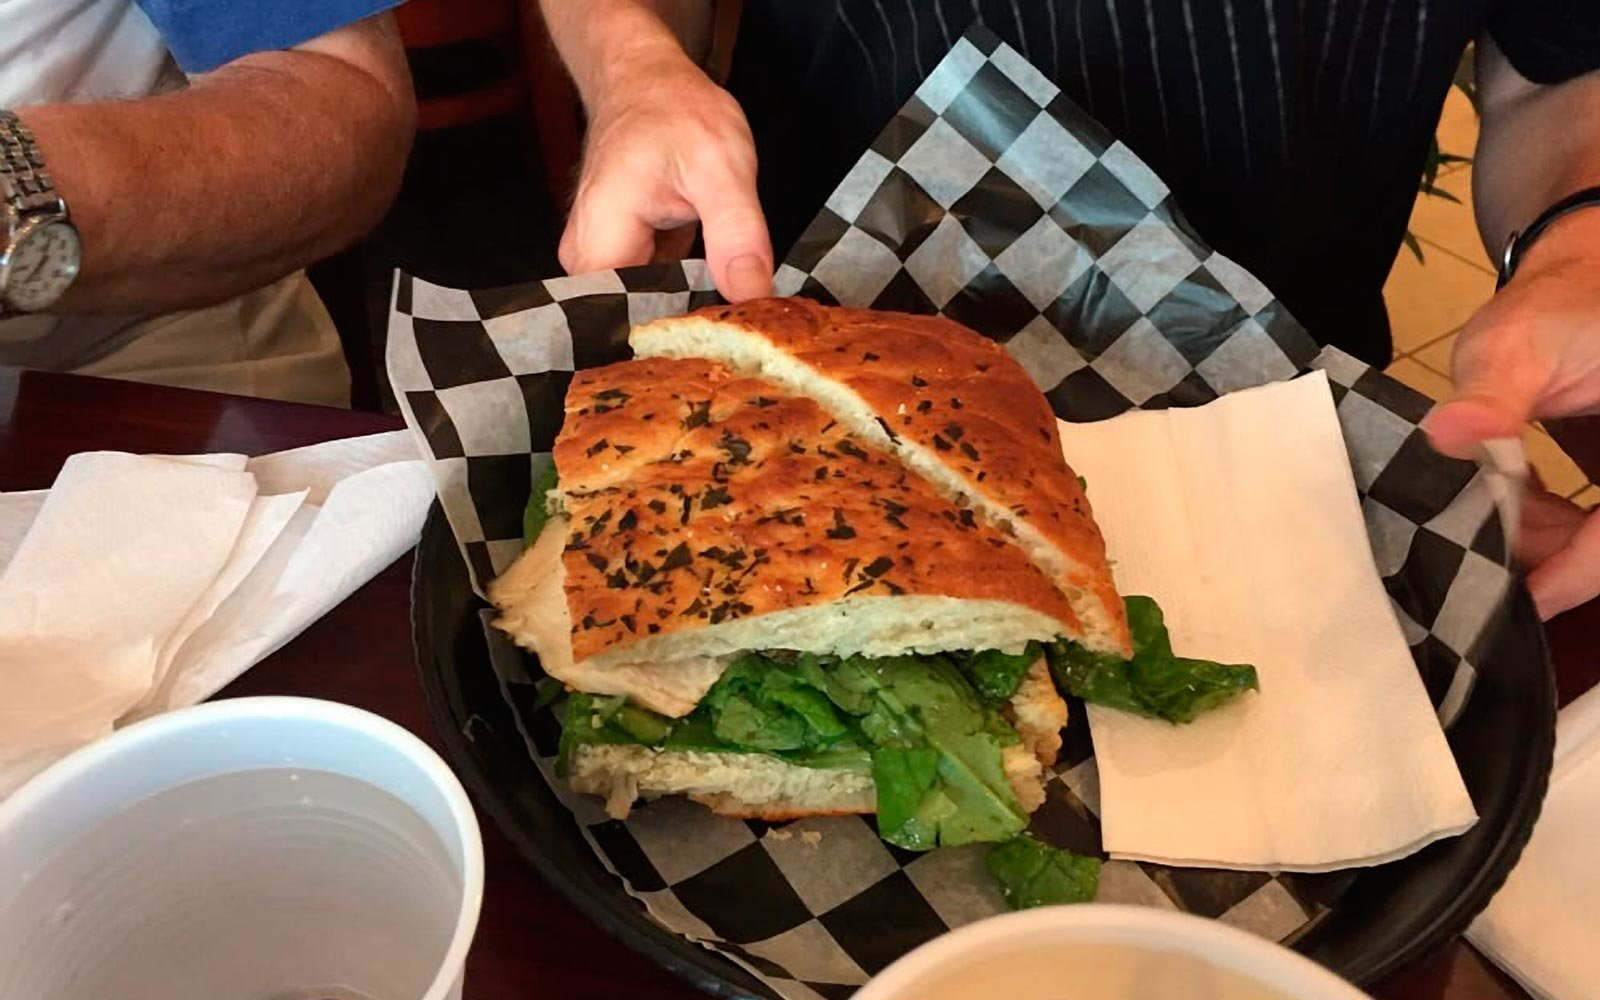 Soup and Sandwich at Zuppa Cucina, in Shakopee Minnesota